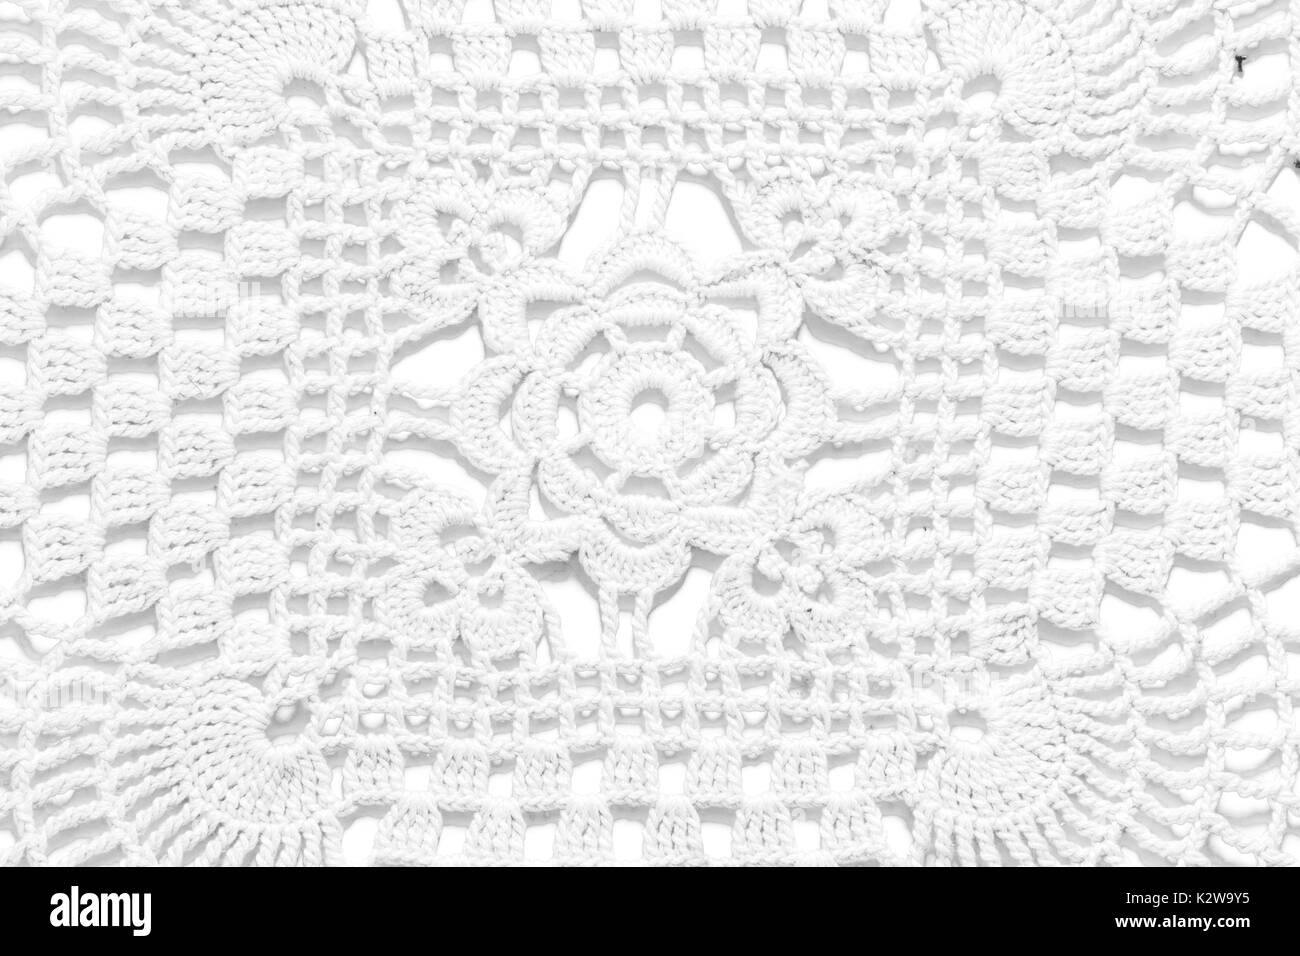 White Handmade Lace Tablecloth Texture On White Background.